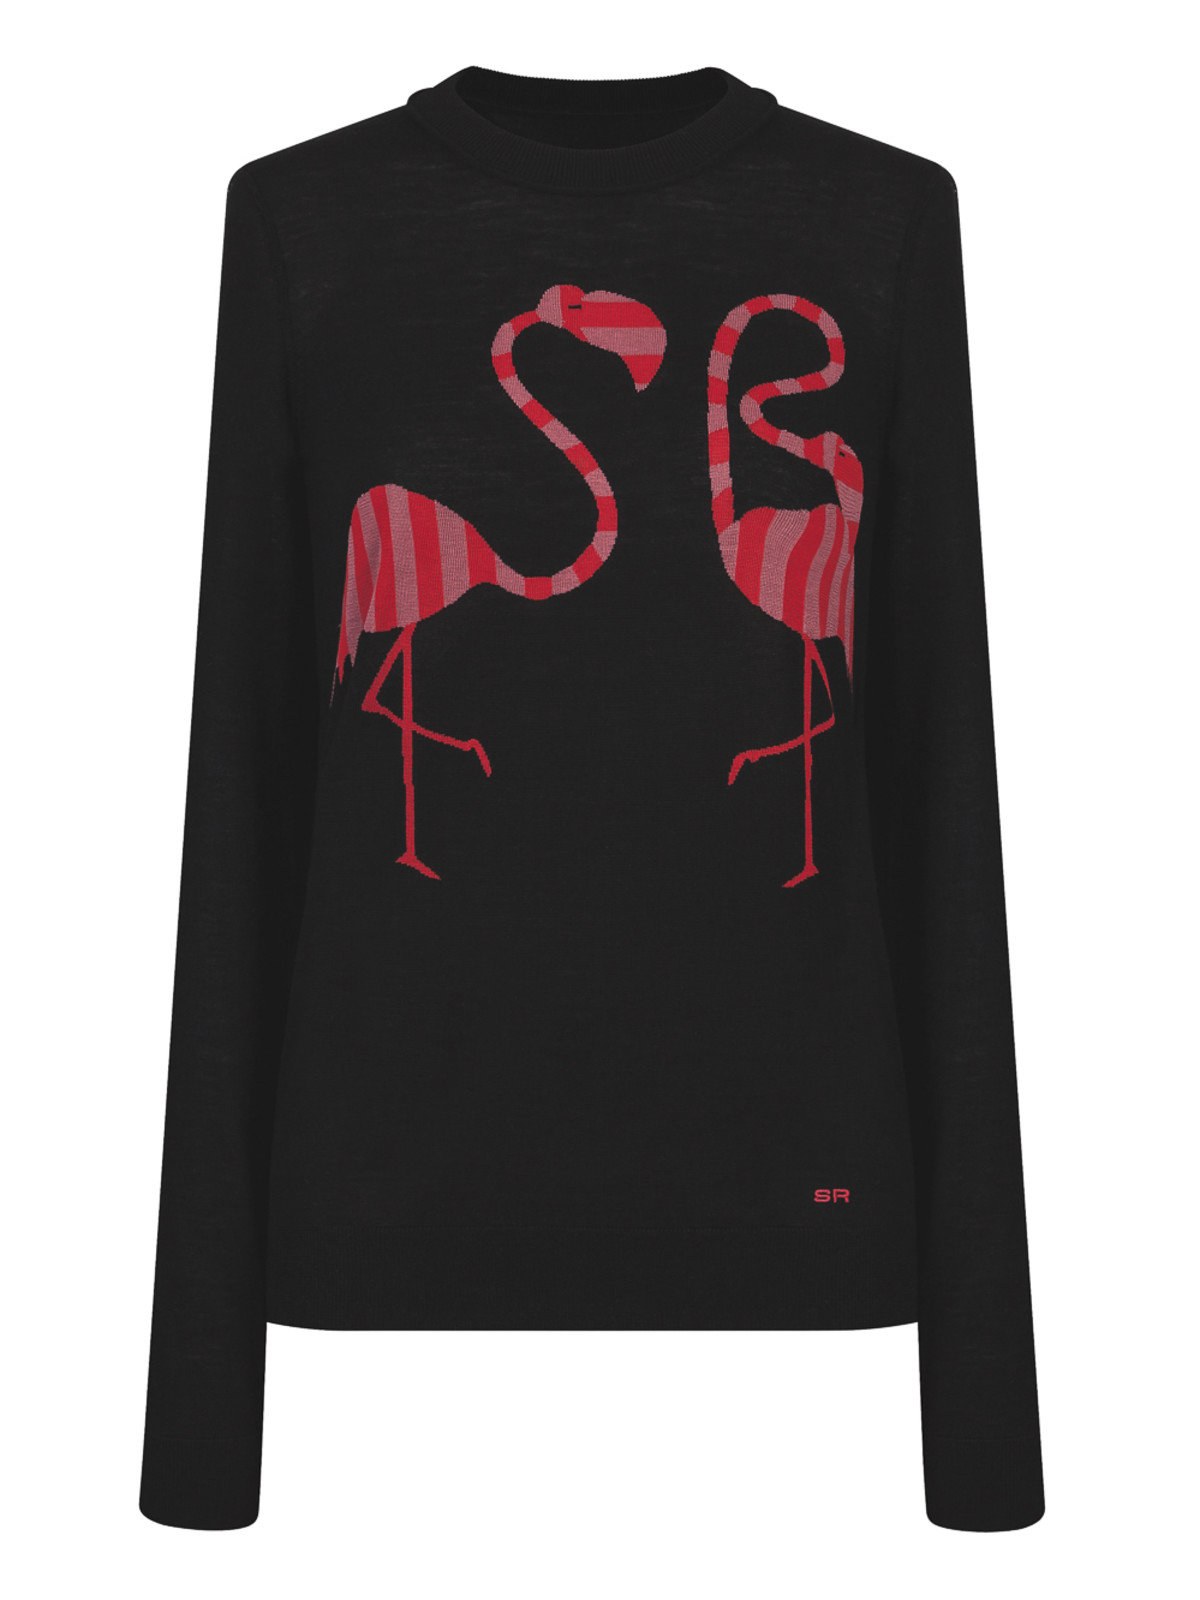 Sonia Rykiel intarsia flamingo sweater The Webster Lane Crawford collaboration